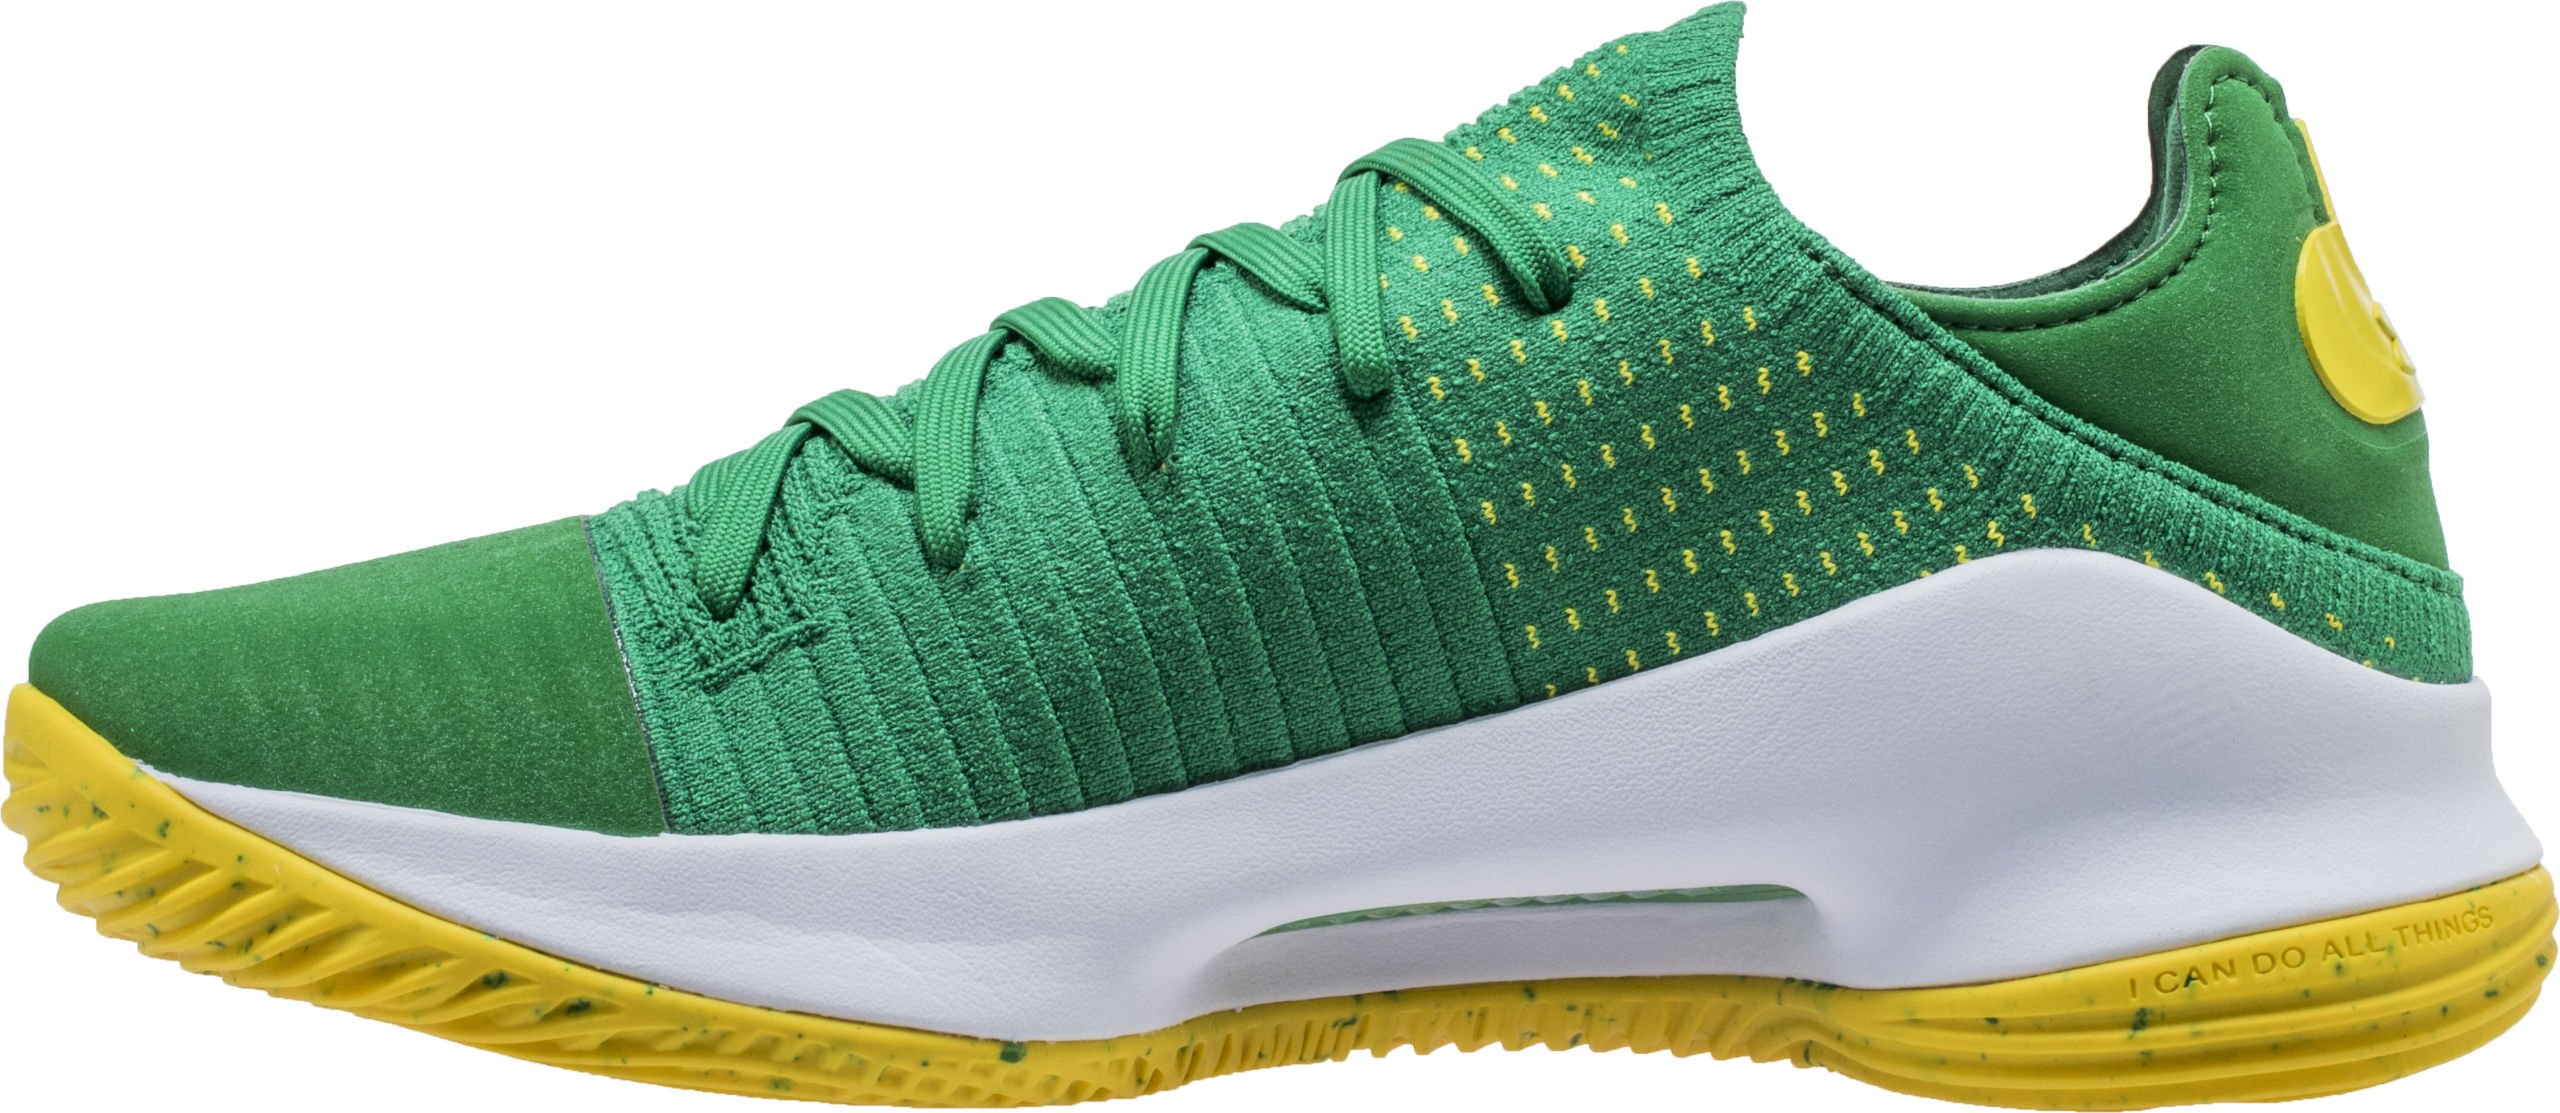 under armour curry 4 low oakland As 1